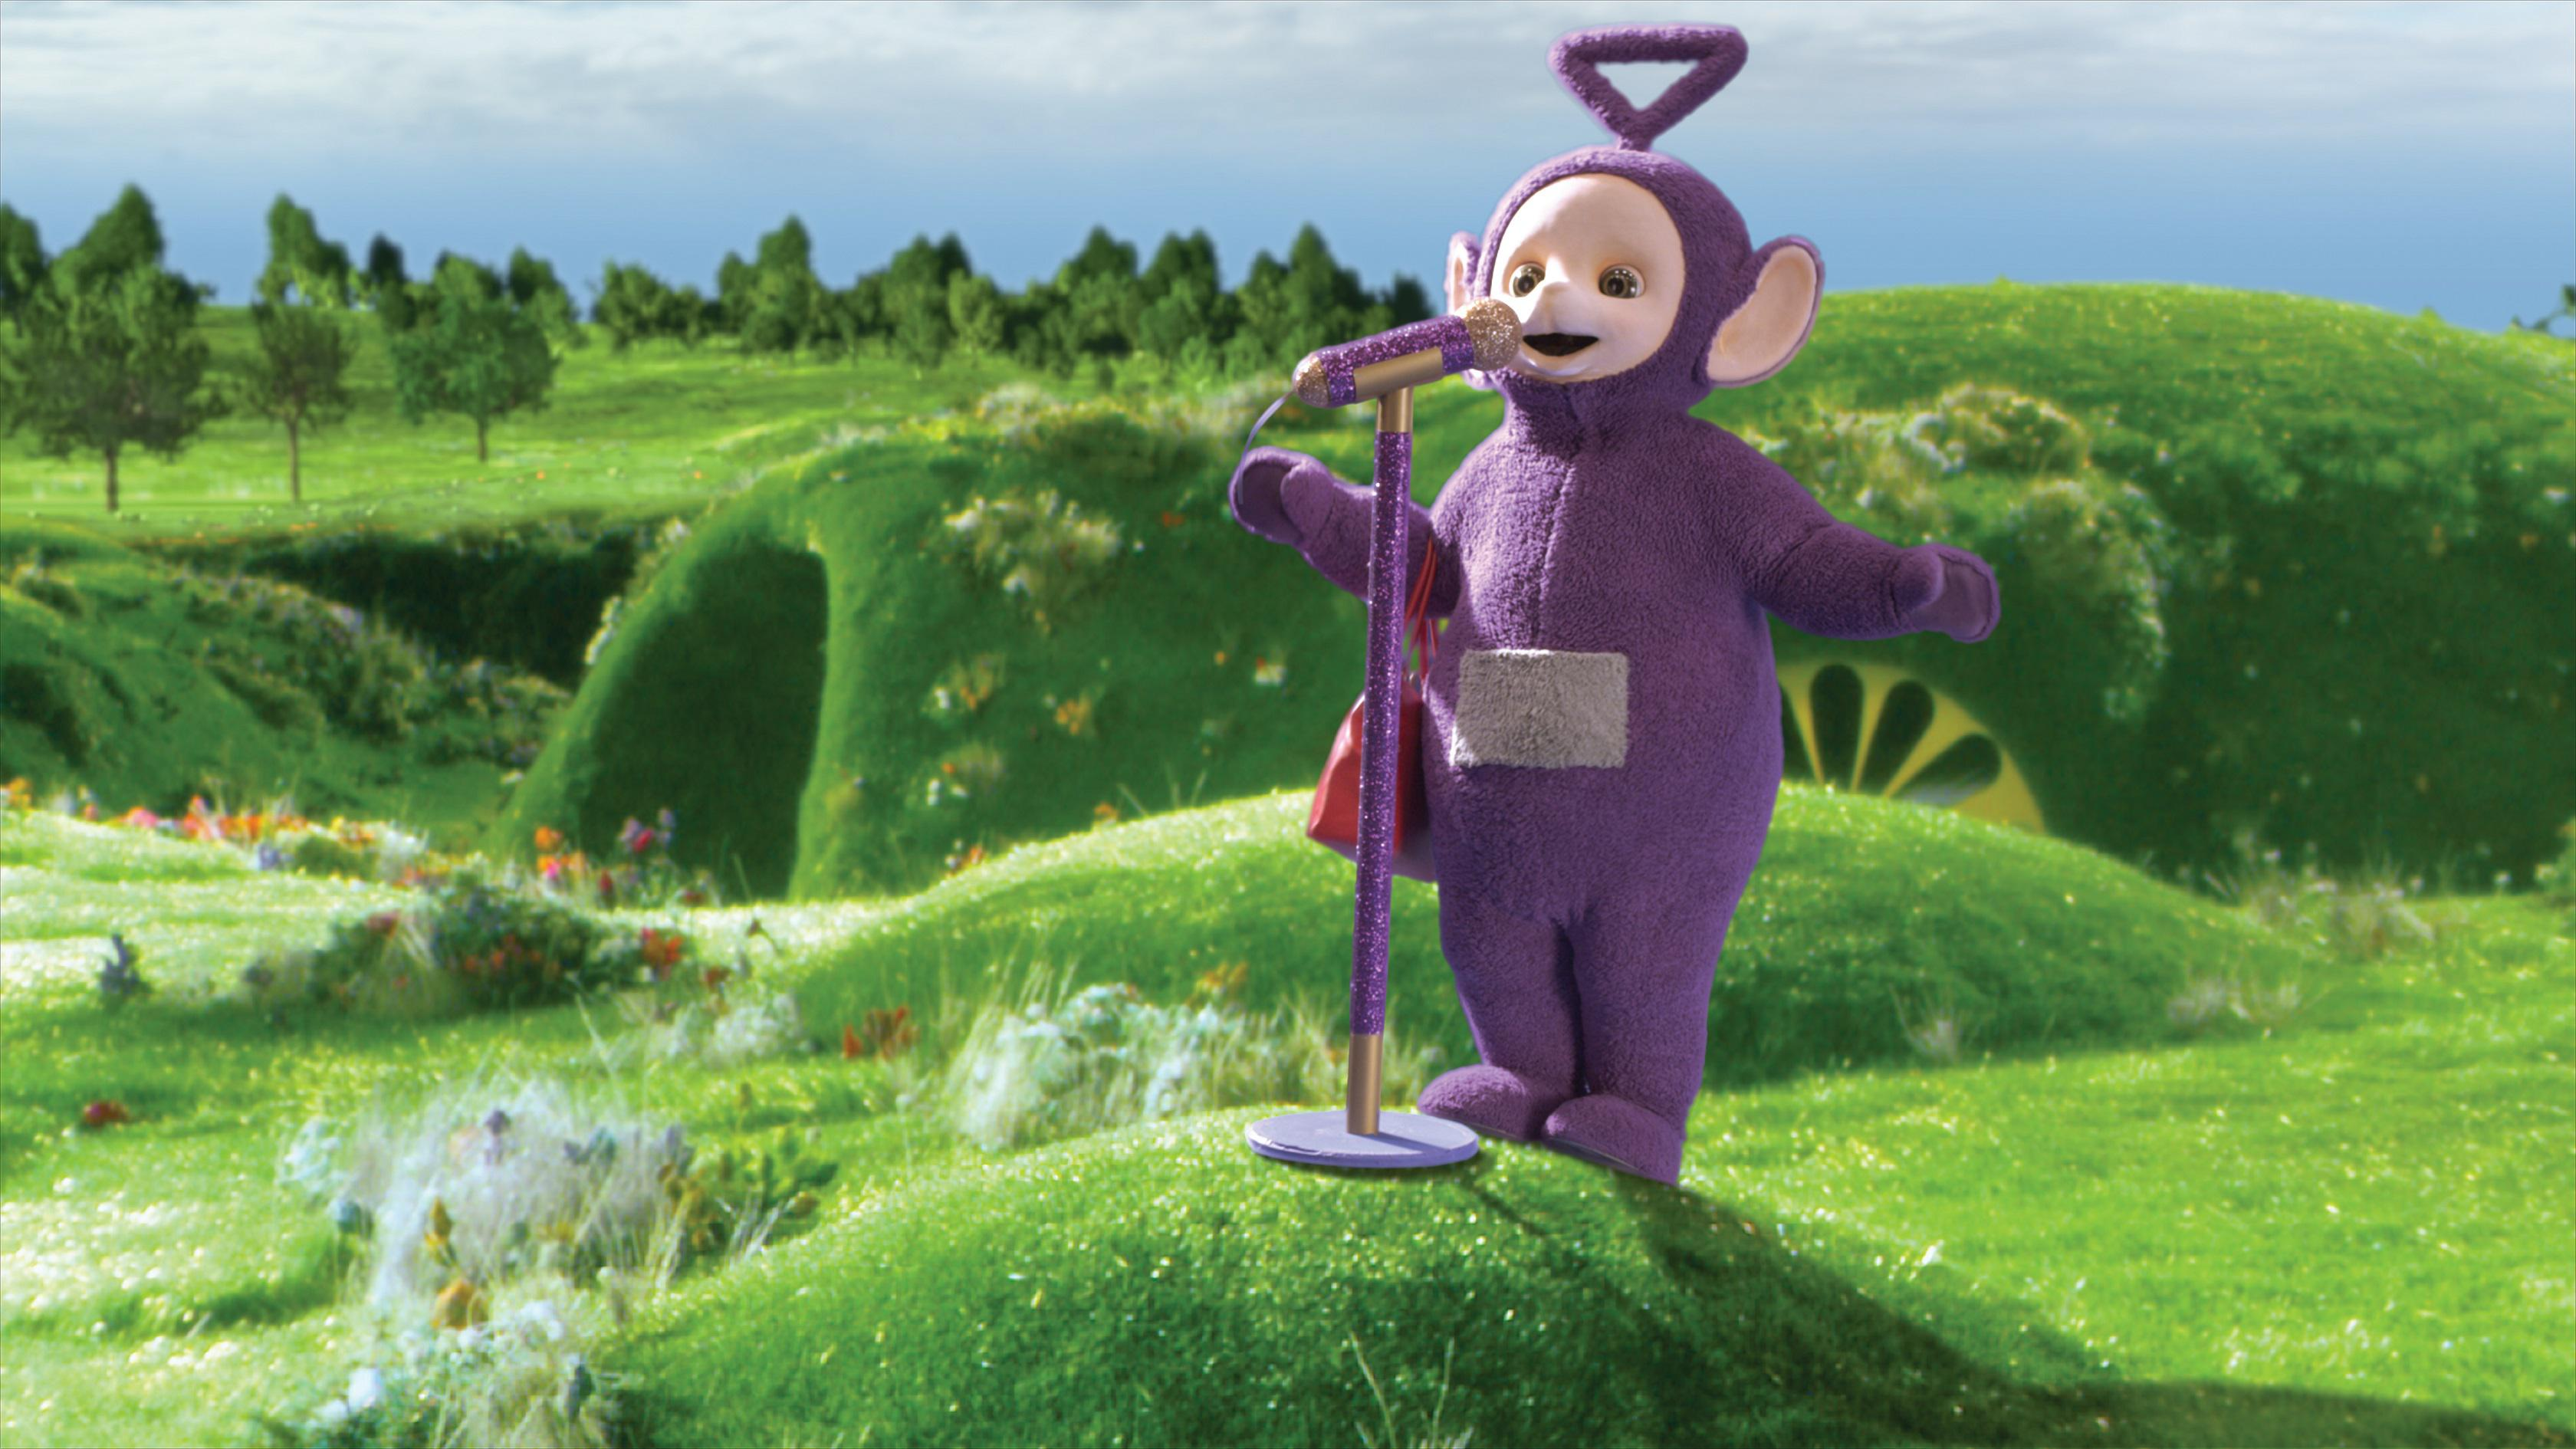 Kids Favourites The Teletubbies Are Back With Tinky Winky